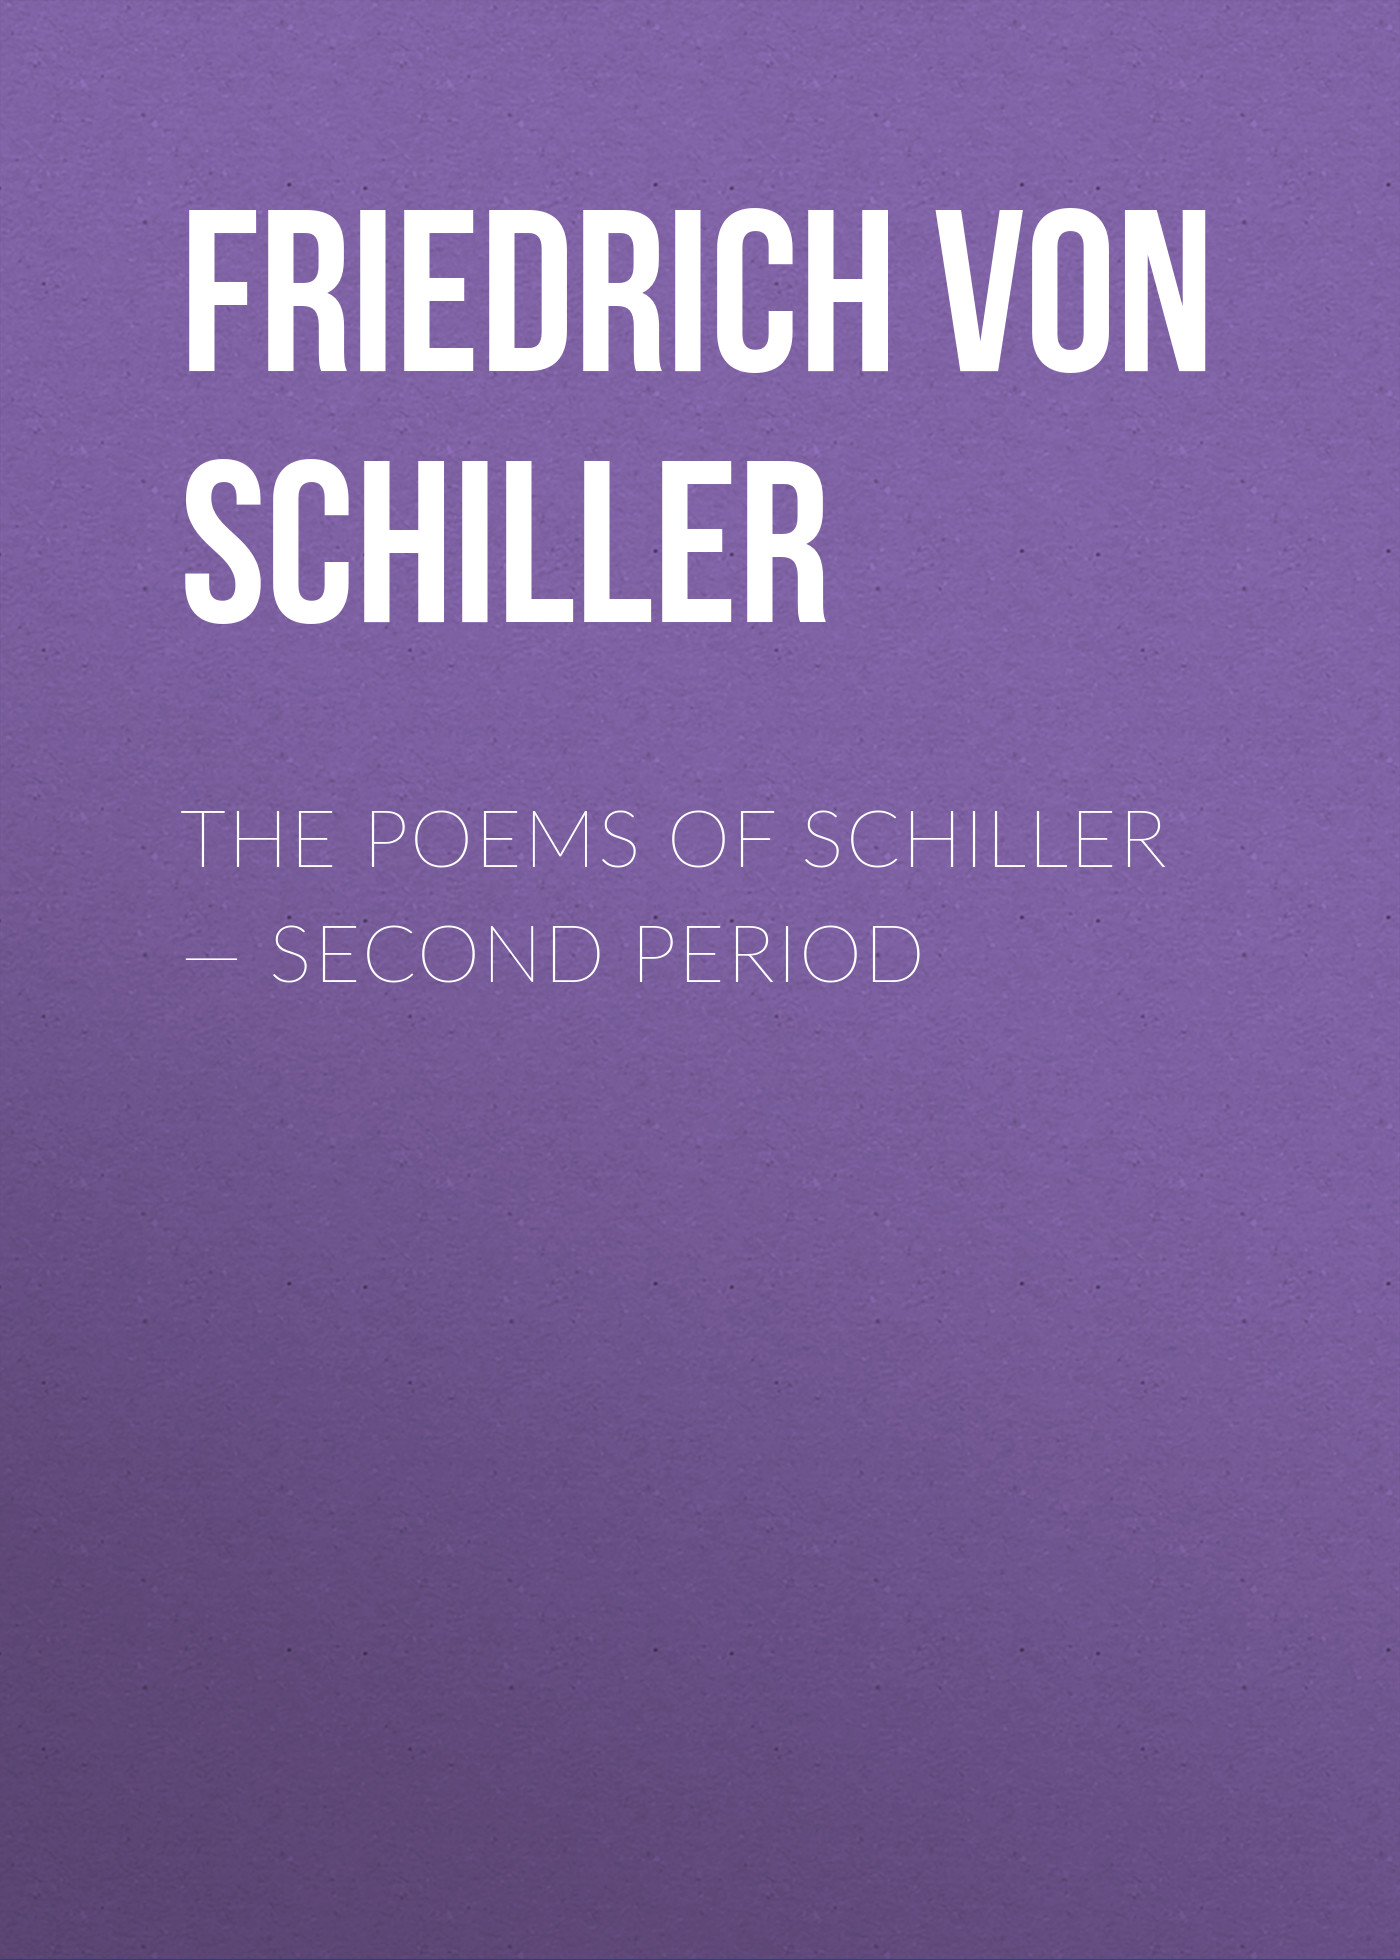 Friedrich von Schiller The Poems of Schiller – Second period schiller bielefeld